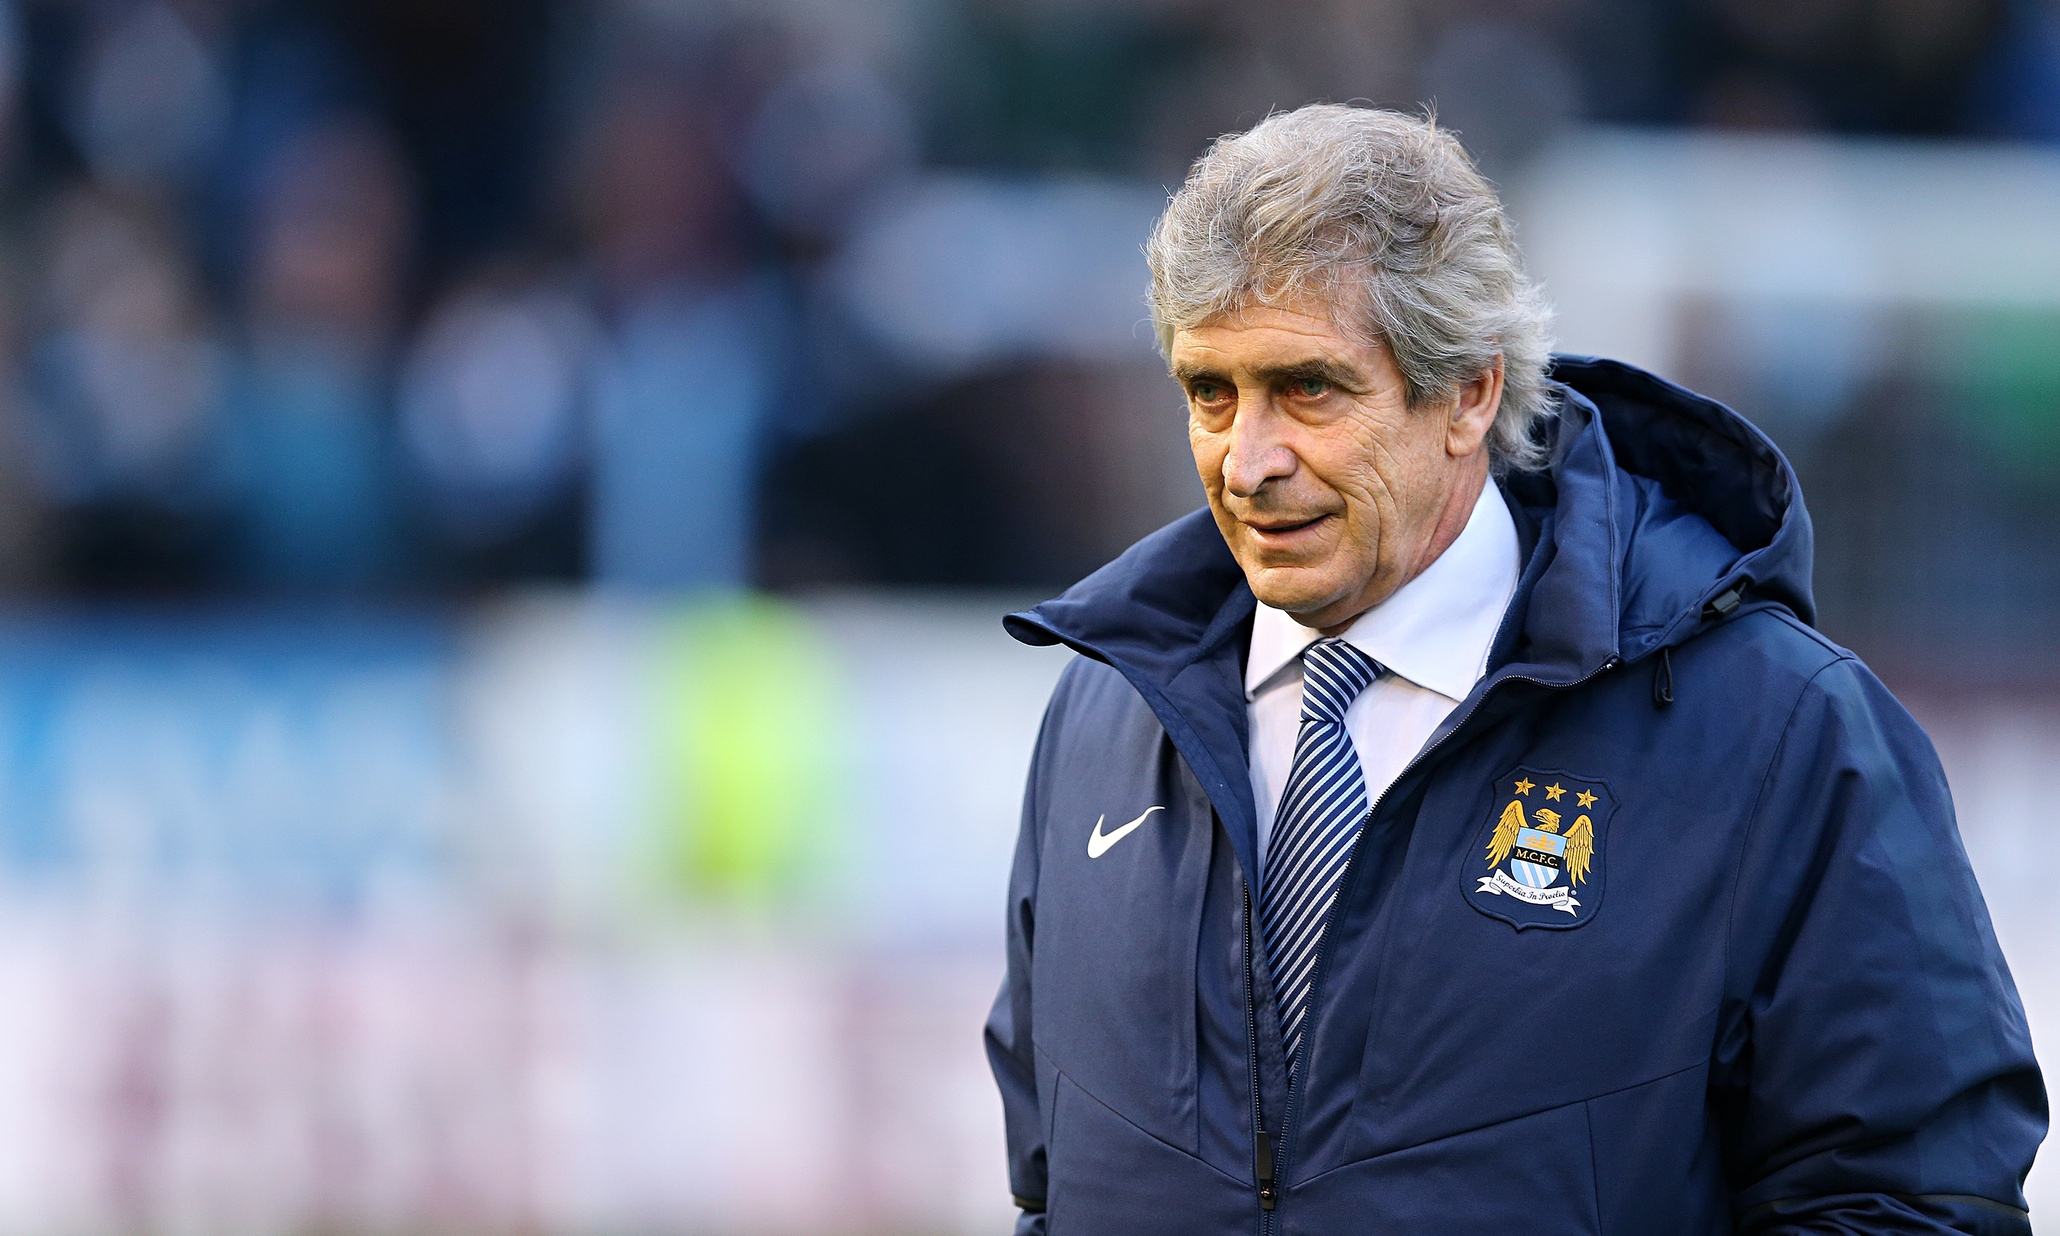 Manuel-Pellegrini-Burnley-Manchester City